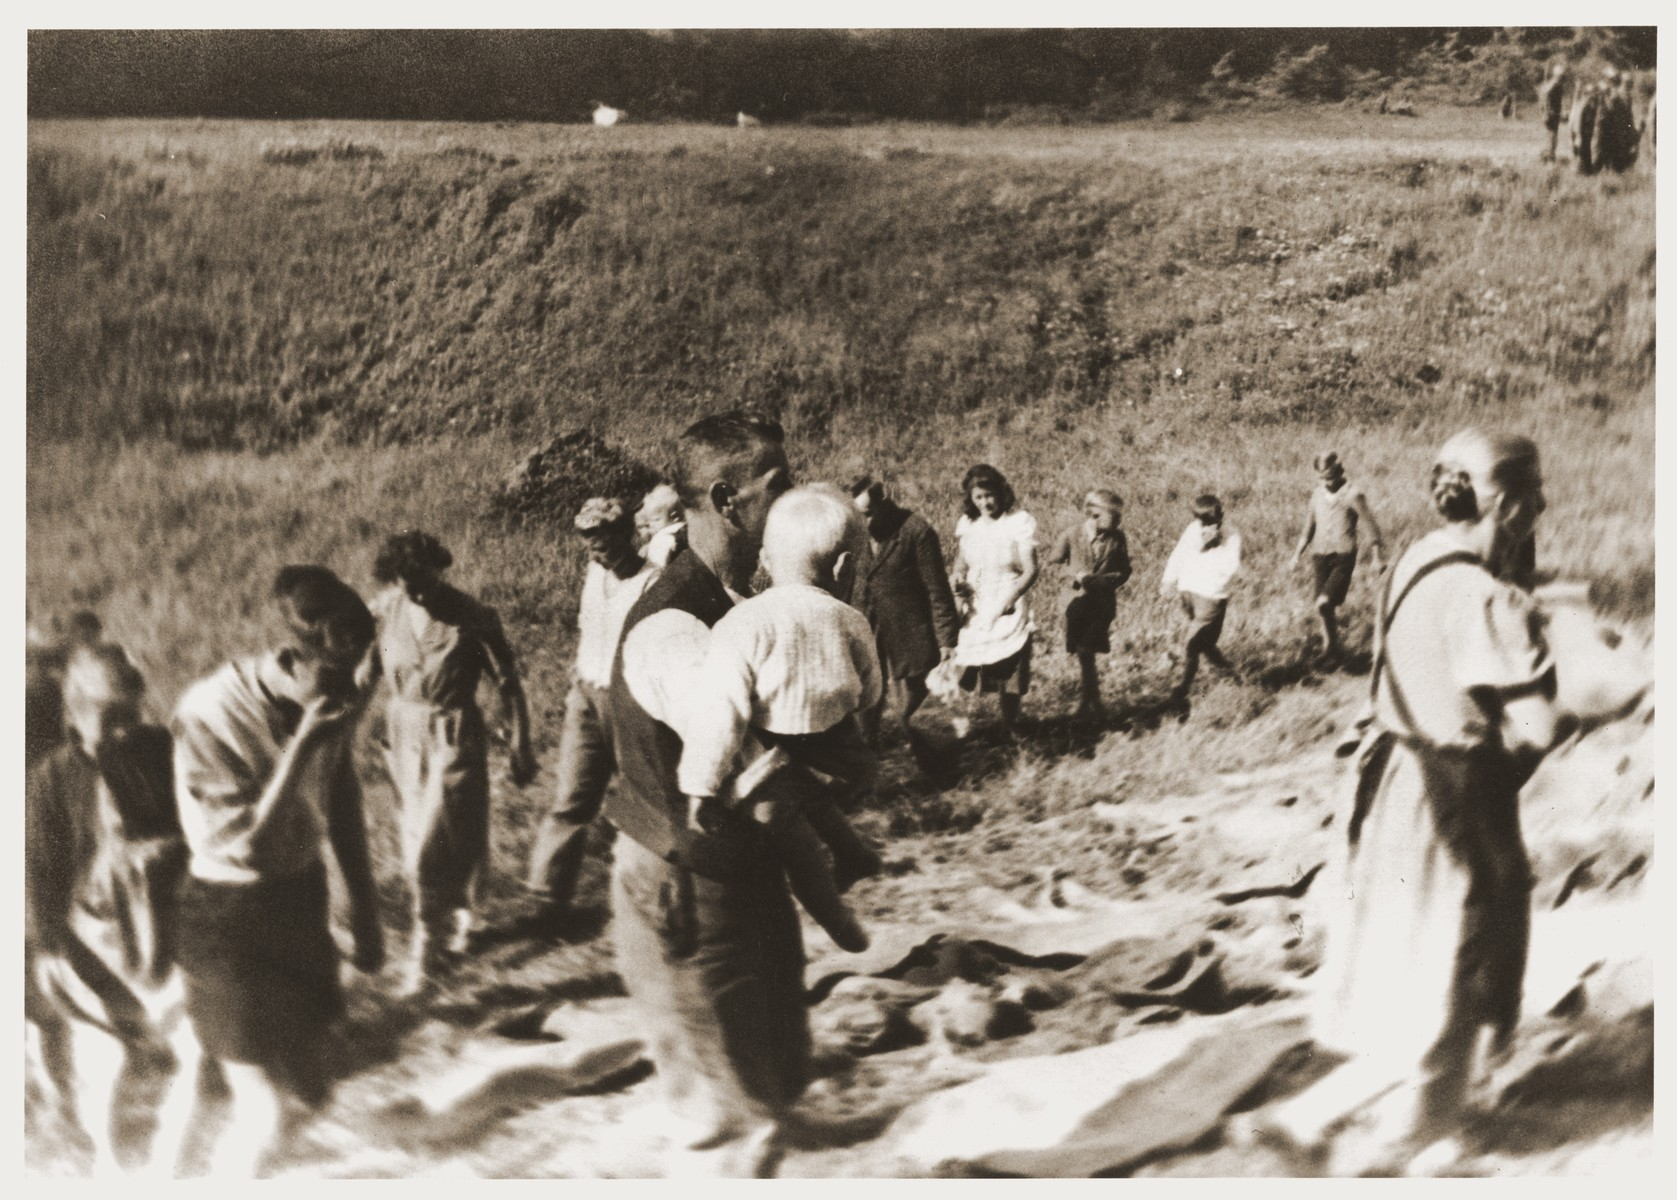 German civilians file past the exhumed bodies of former prisoners in Tittling, Germany.